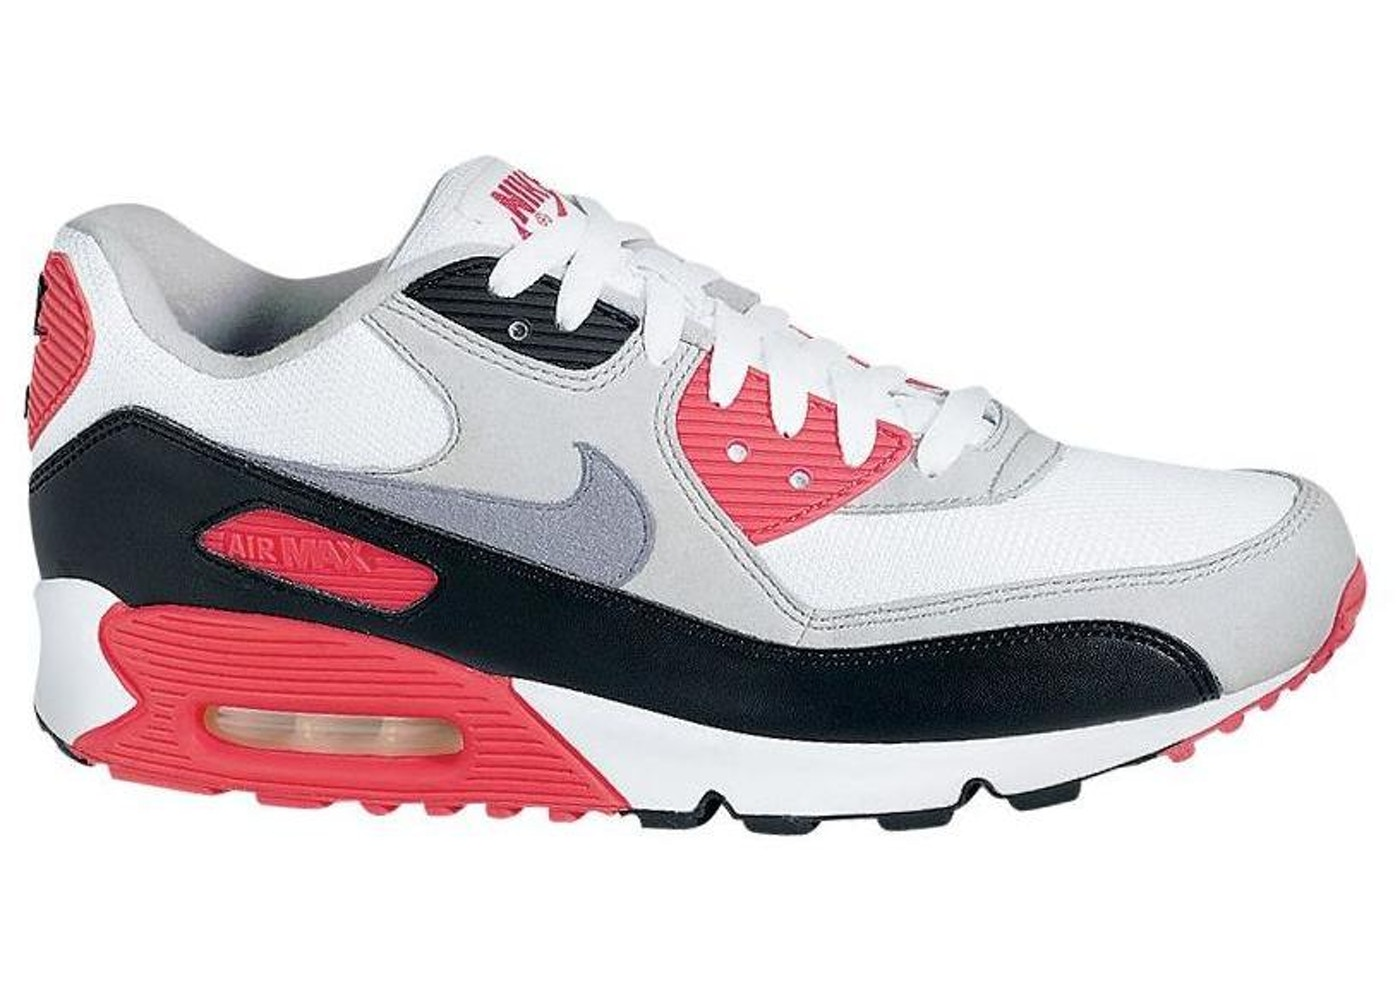 13f421c0aa71 Air Max 90 Infrared (2010) - 325018-107